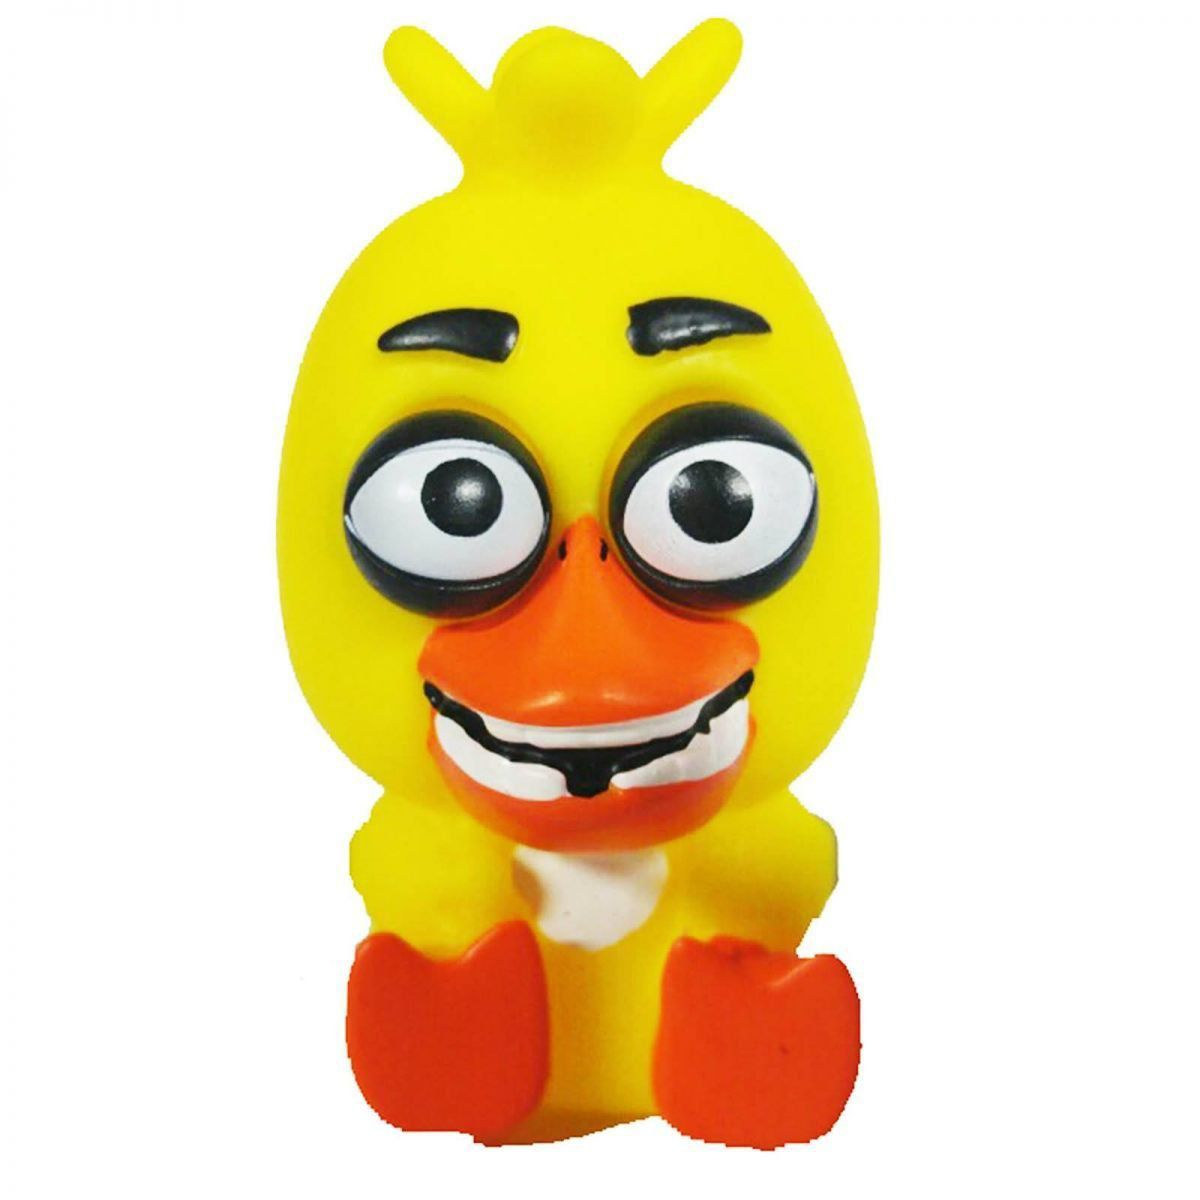 Funko Chaveiro de Apertar: Chica: Five Nights At Freddy's (FNAF) - Funko